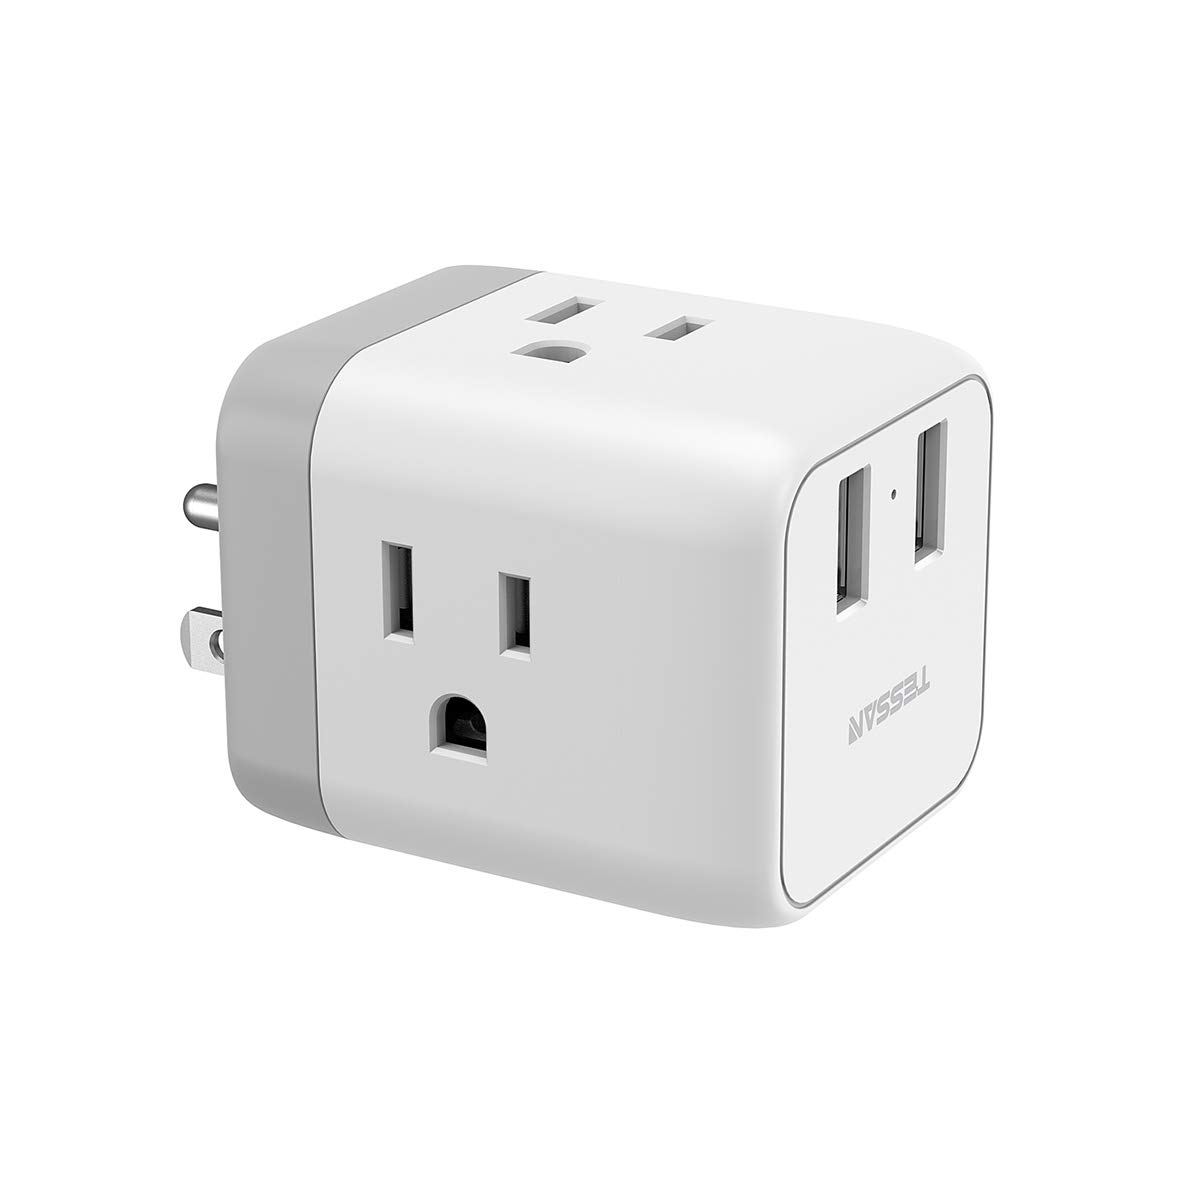 Multi Plug 3 Outlet Extender with 2 USB Wall Charger, Cruise Ship Travel Power Strip Extension, Cube Wall Plug Outlet Splitter Adapter, Compatible with iPhone, iPad, and More